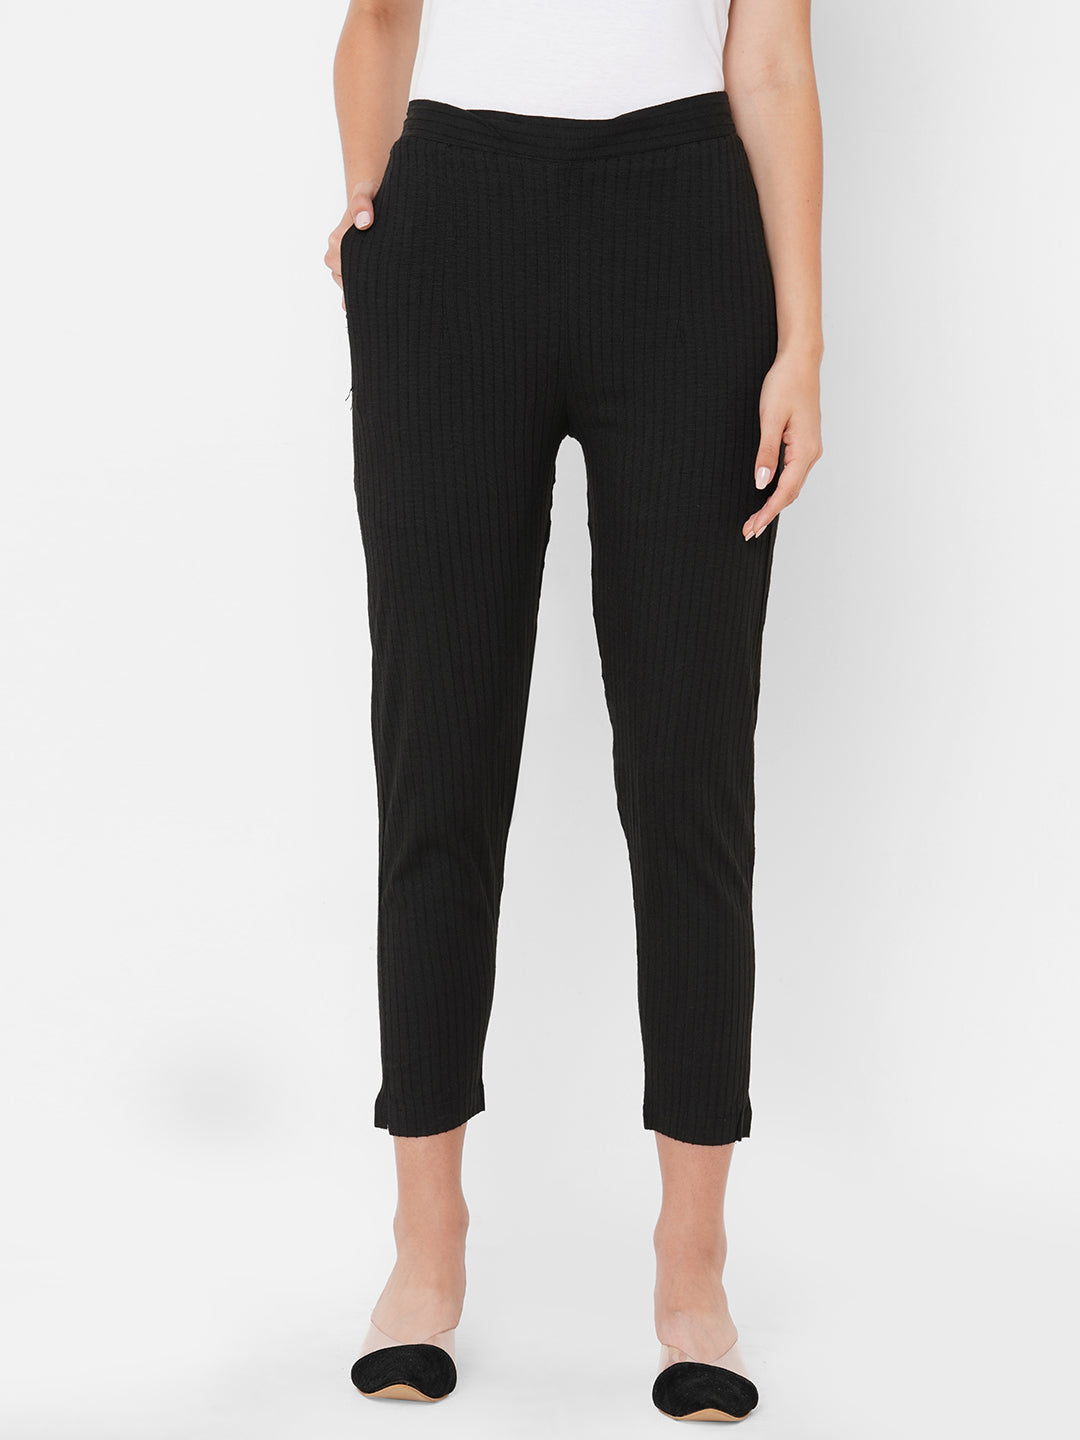 Woven Striped Solid Lycra Pant - Black